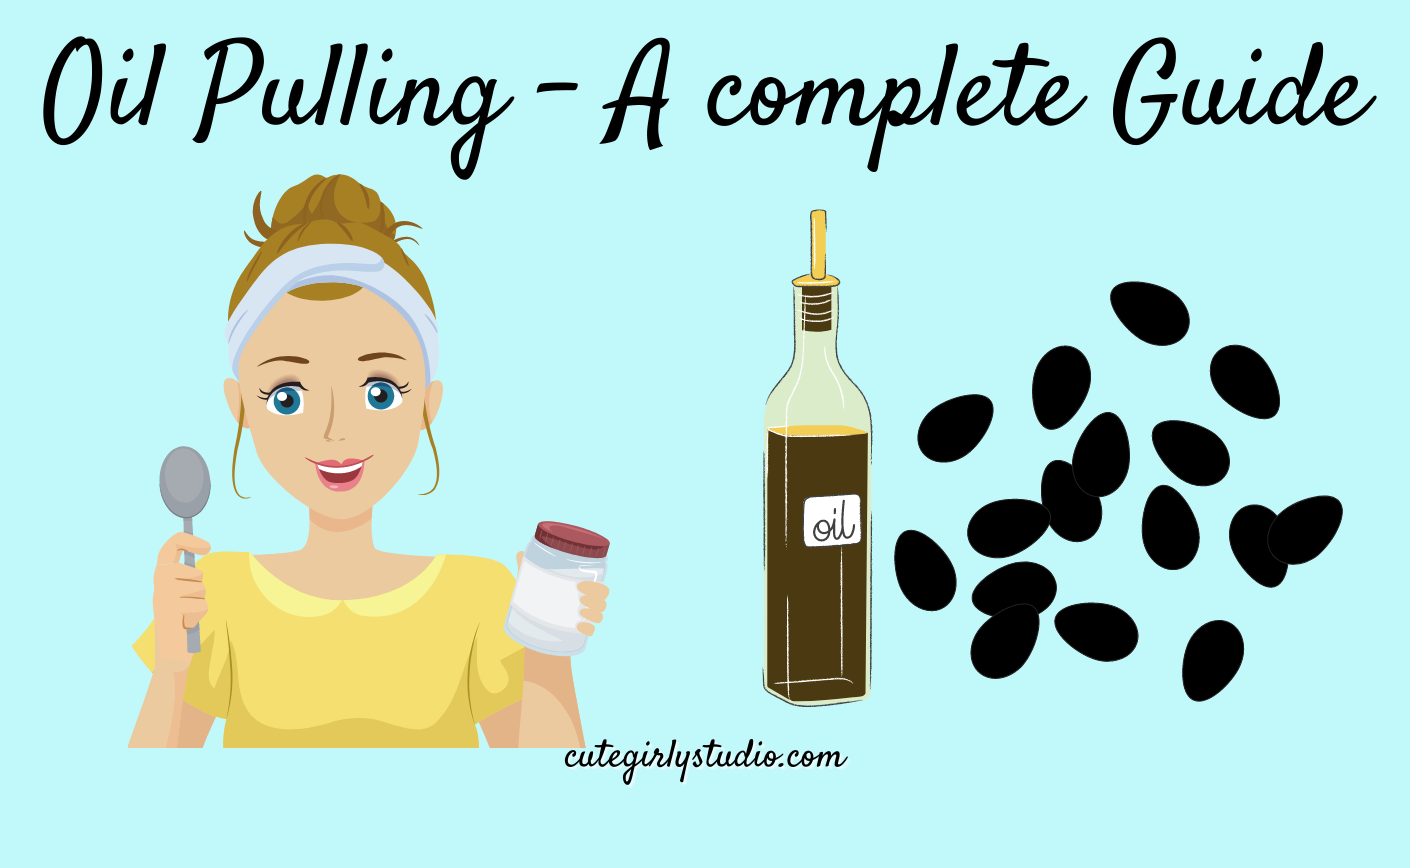 Oil Pulling - A complete Guide - featured